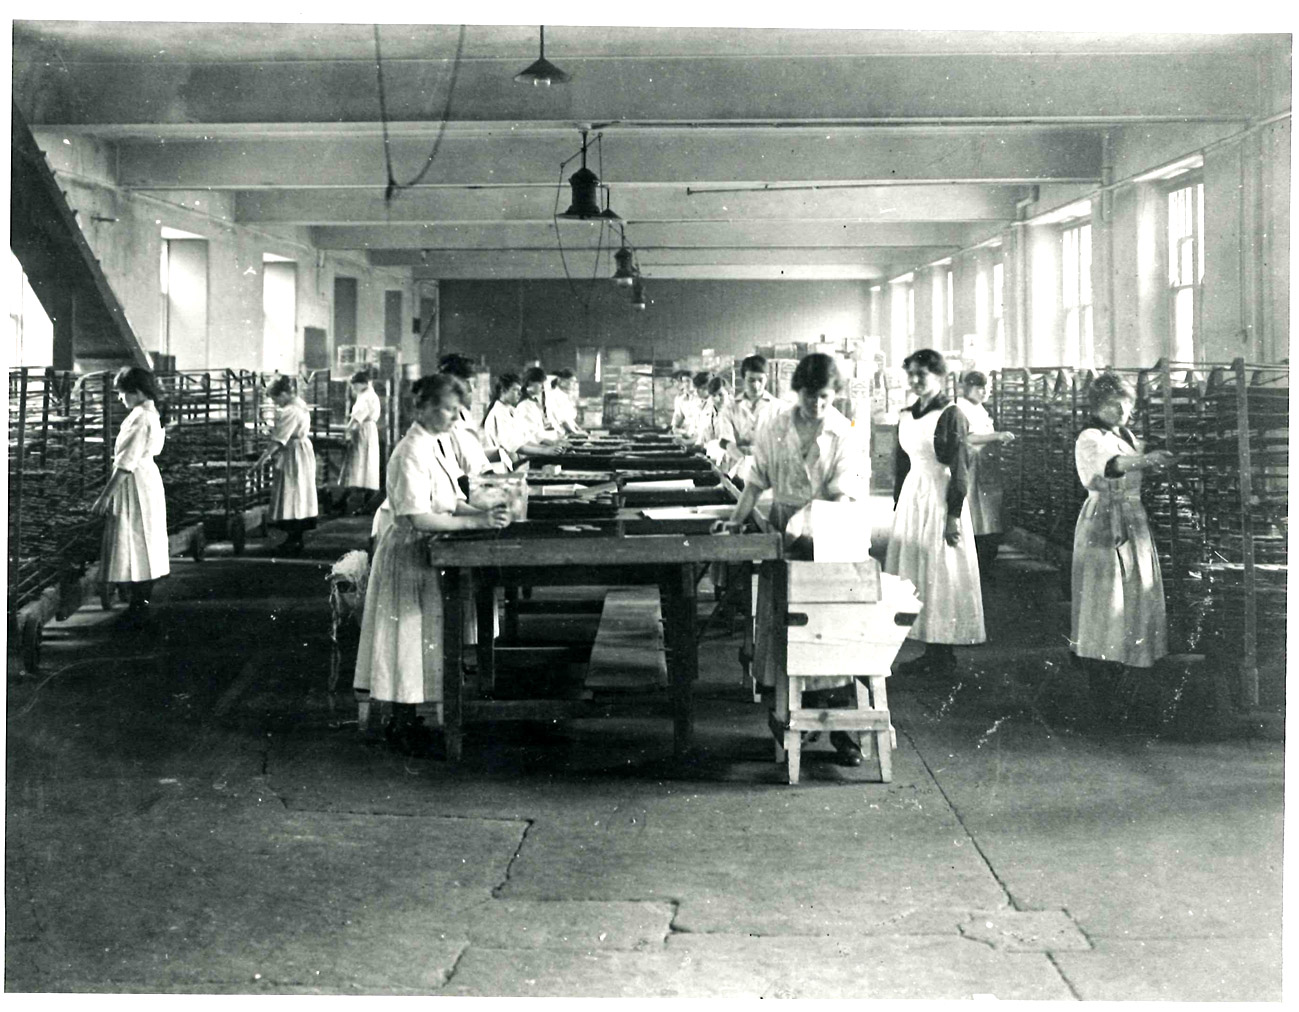 Interior of the Middlemass Biscuit Factory (image courtesy of the National Library of Scotland)